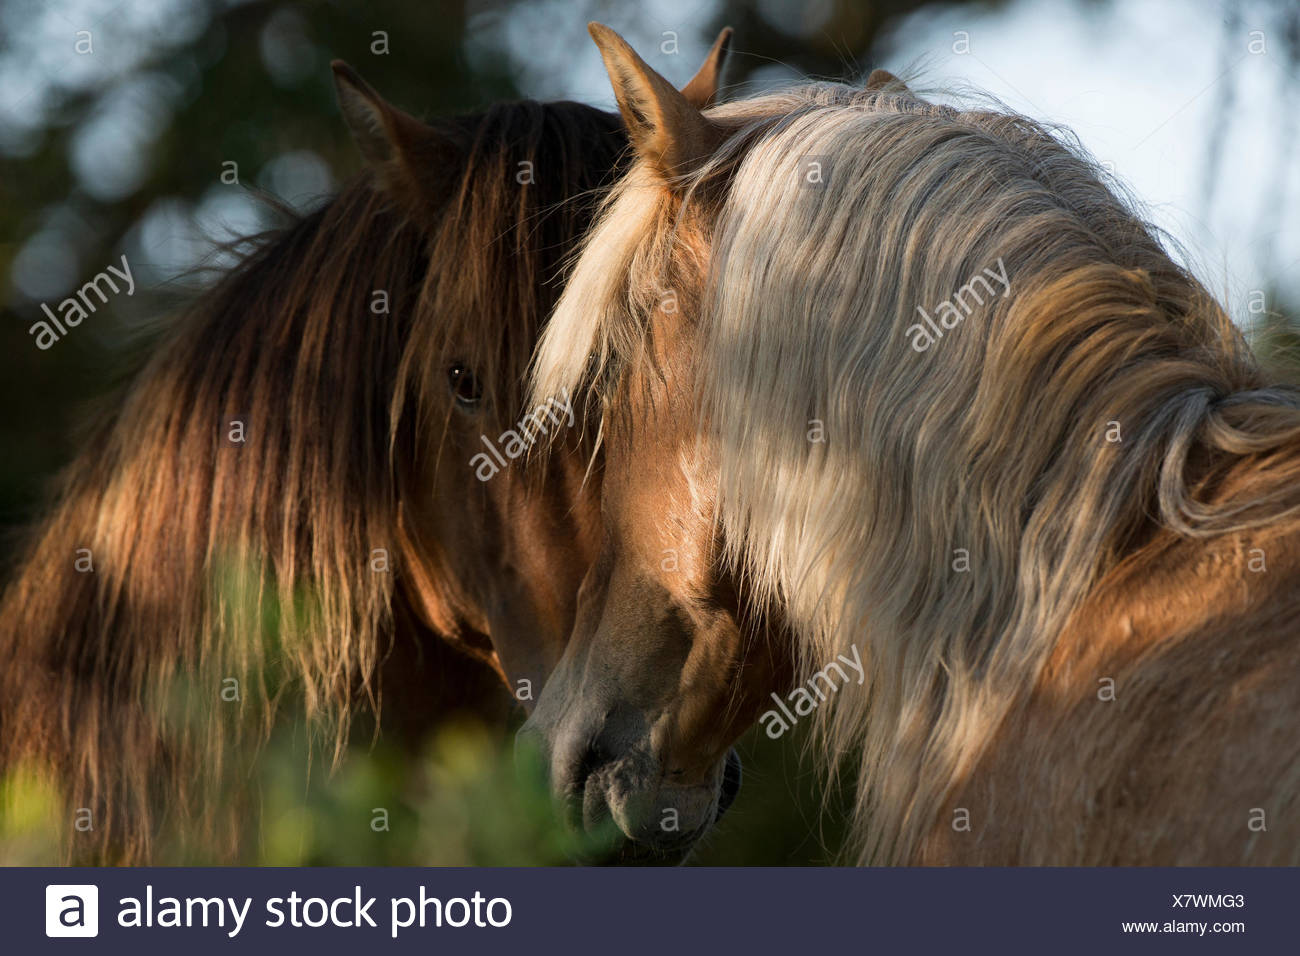 Two wild Mustang stallions meeting in trees, Carrott Island, South Carolina, USA. - Stock Image